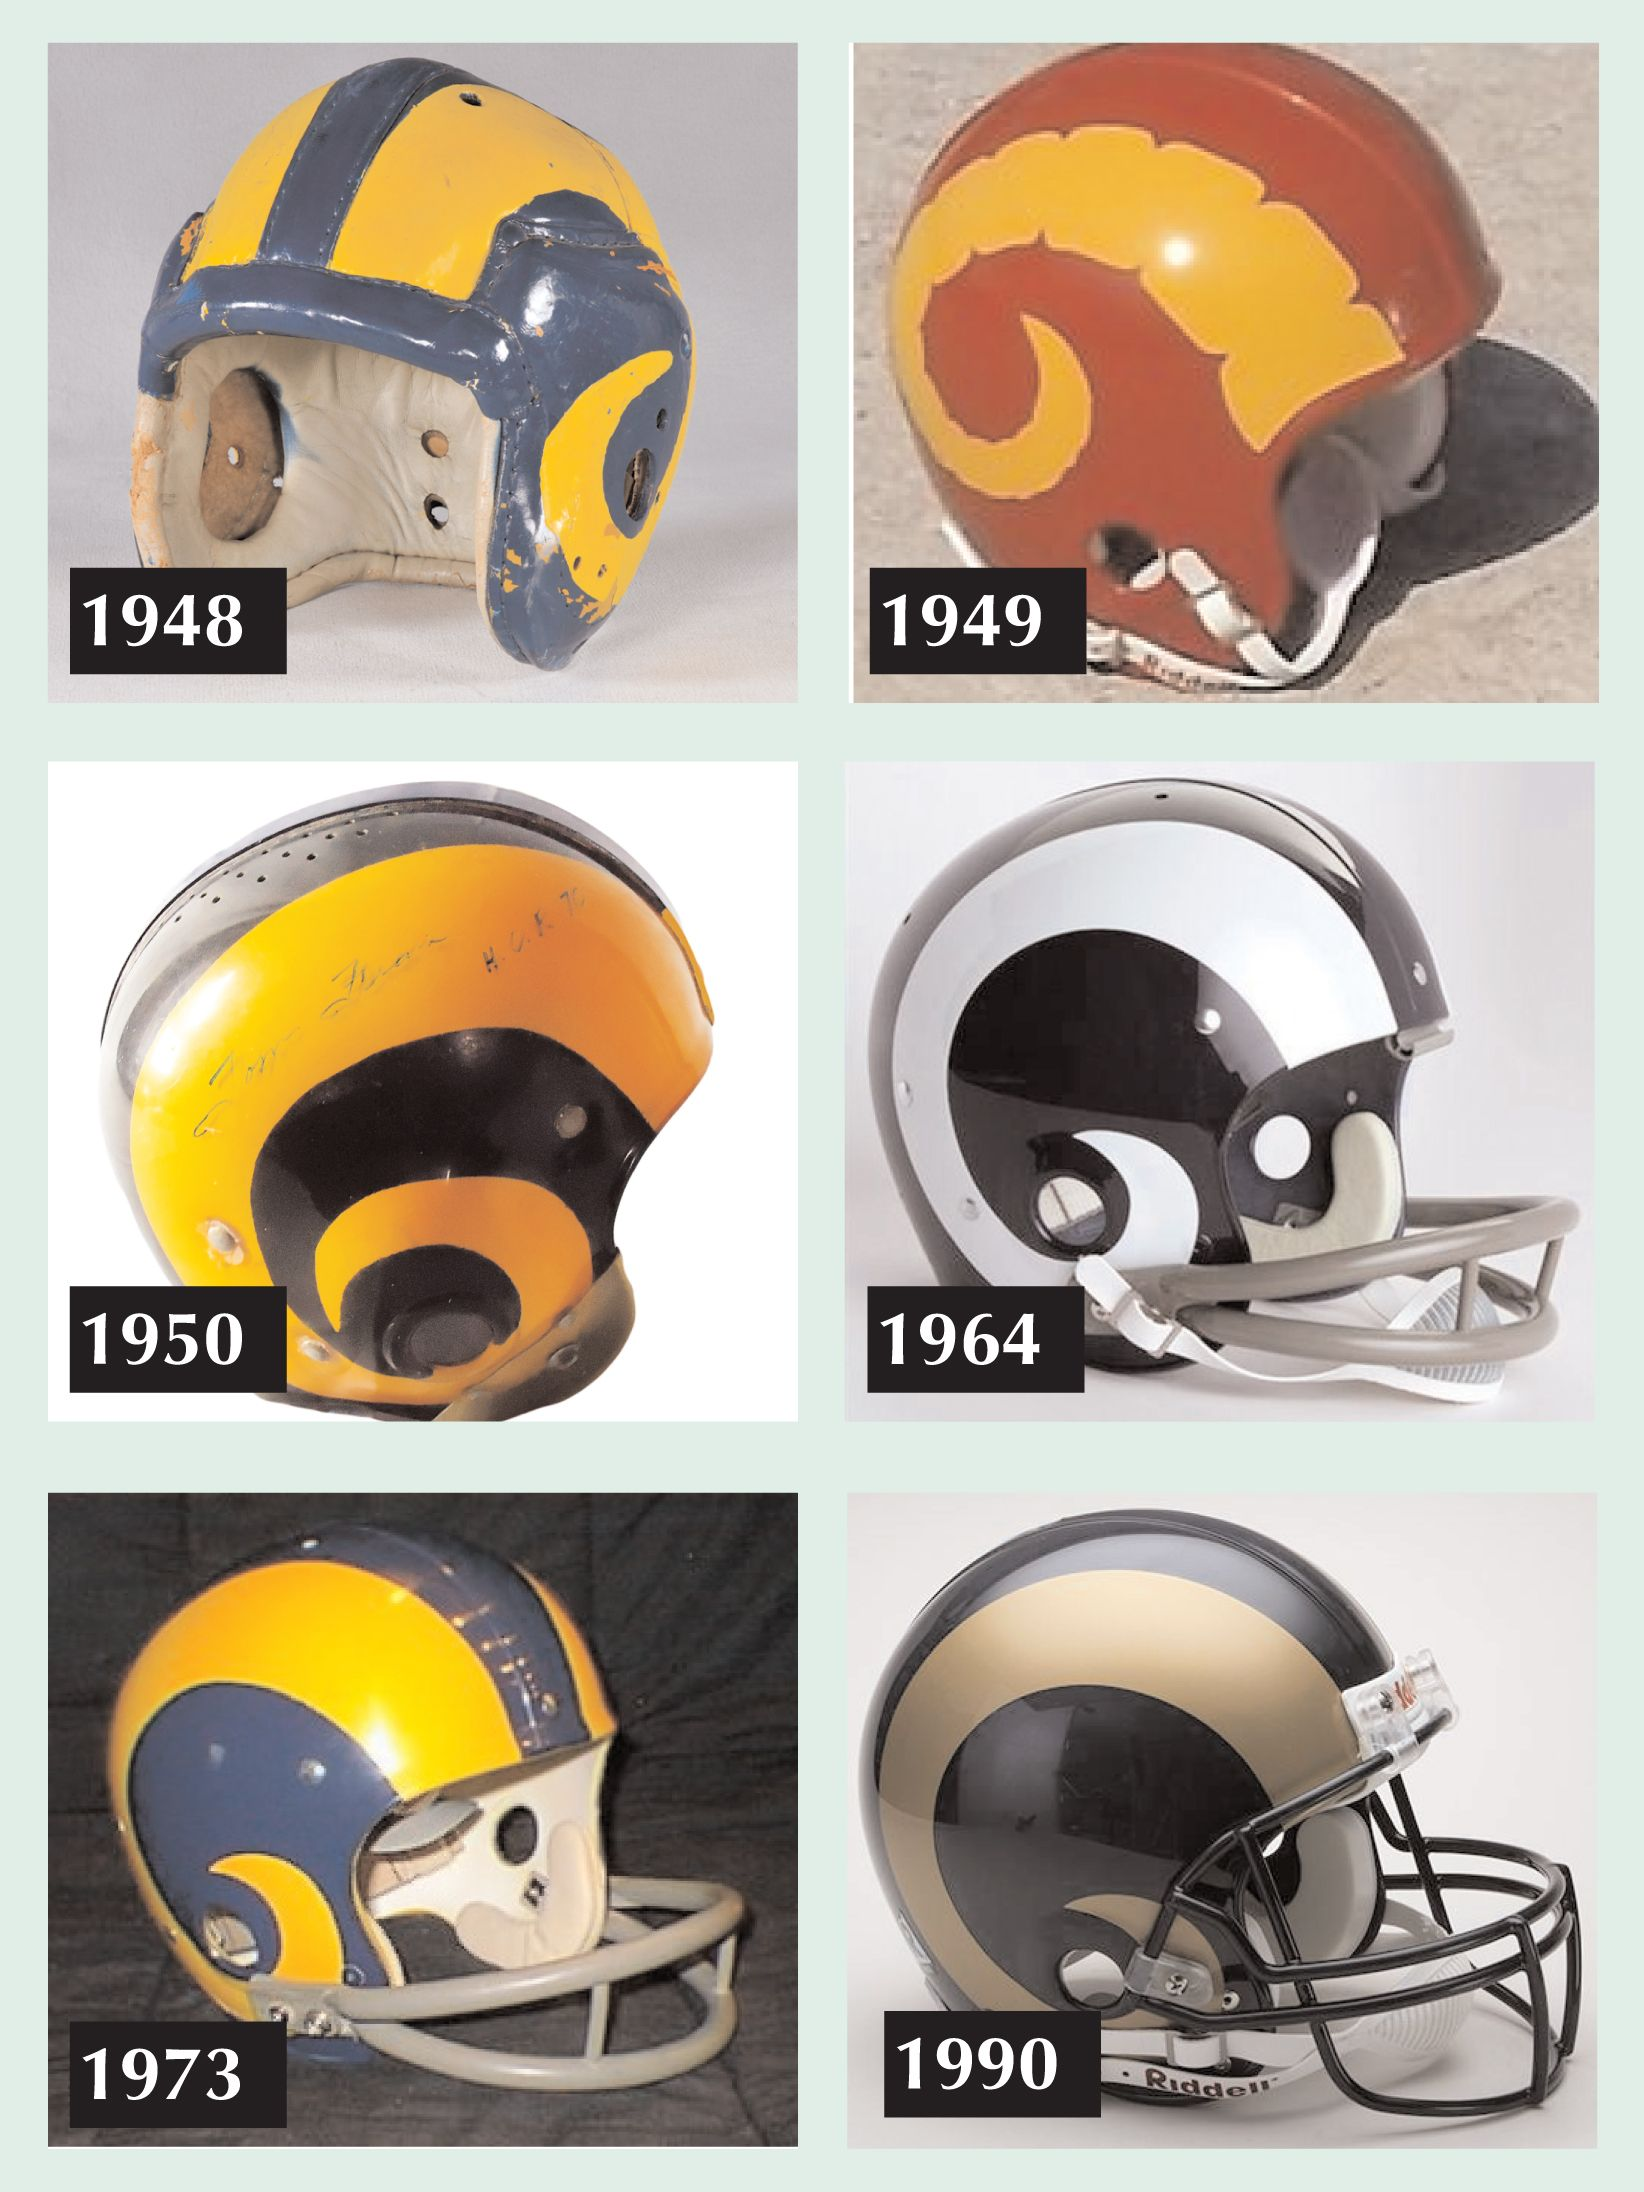 Fullback Fred Gehrke Of The Cleveland Rams Designed The First Pro Helmet With A Logo Or Design In 1948 Rams Football Football Helmets Nfl Football Helmets